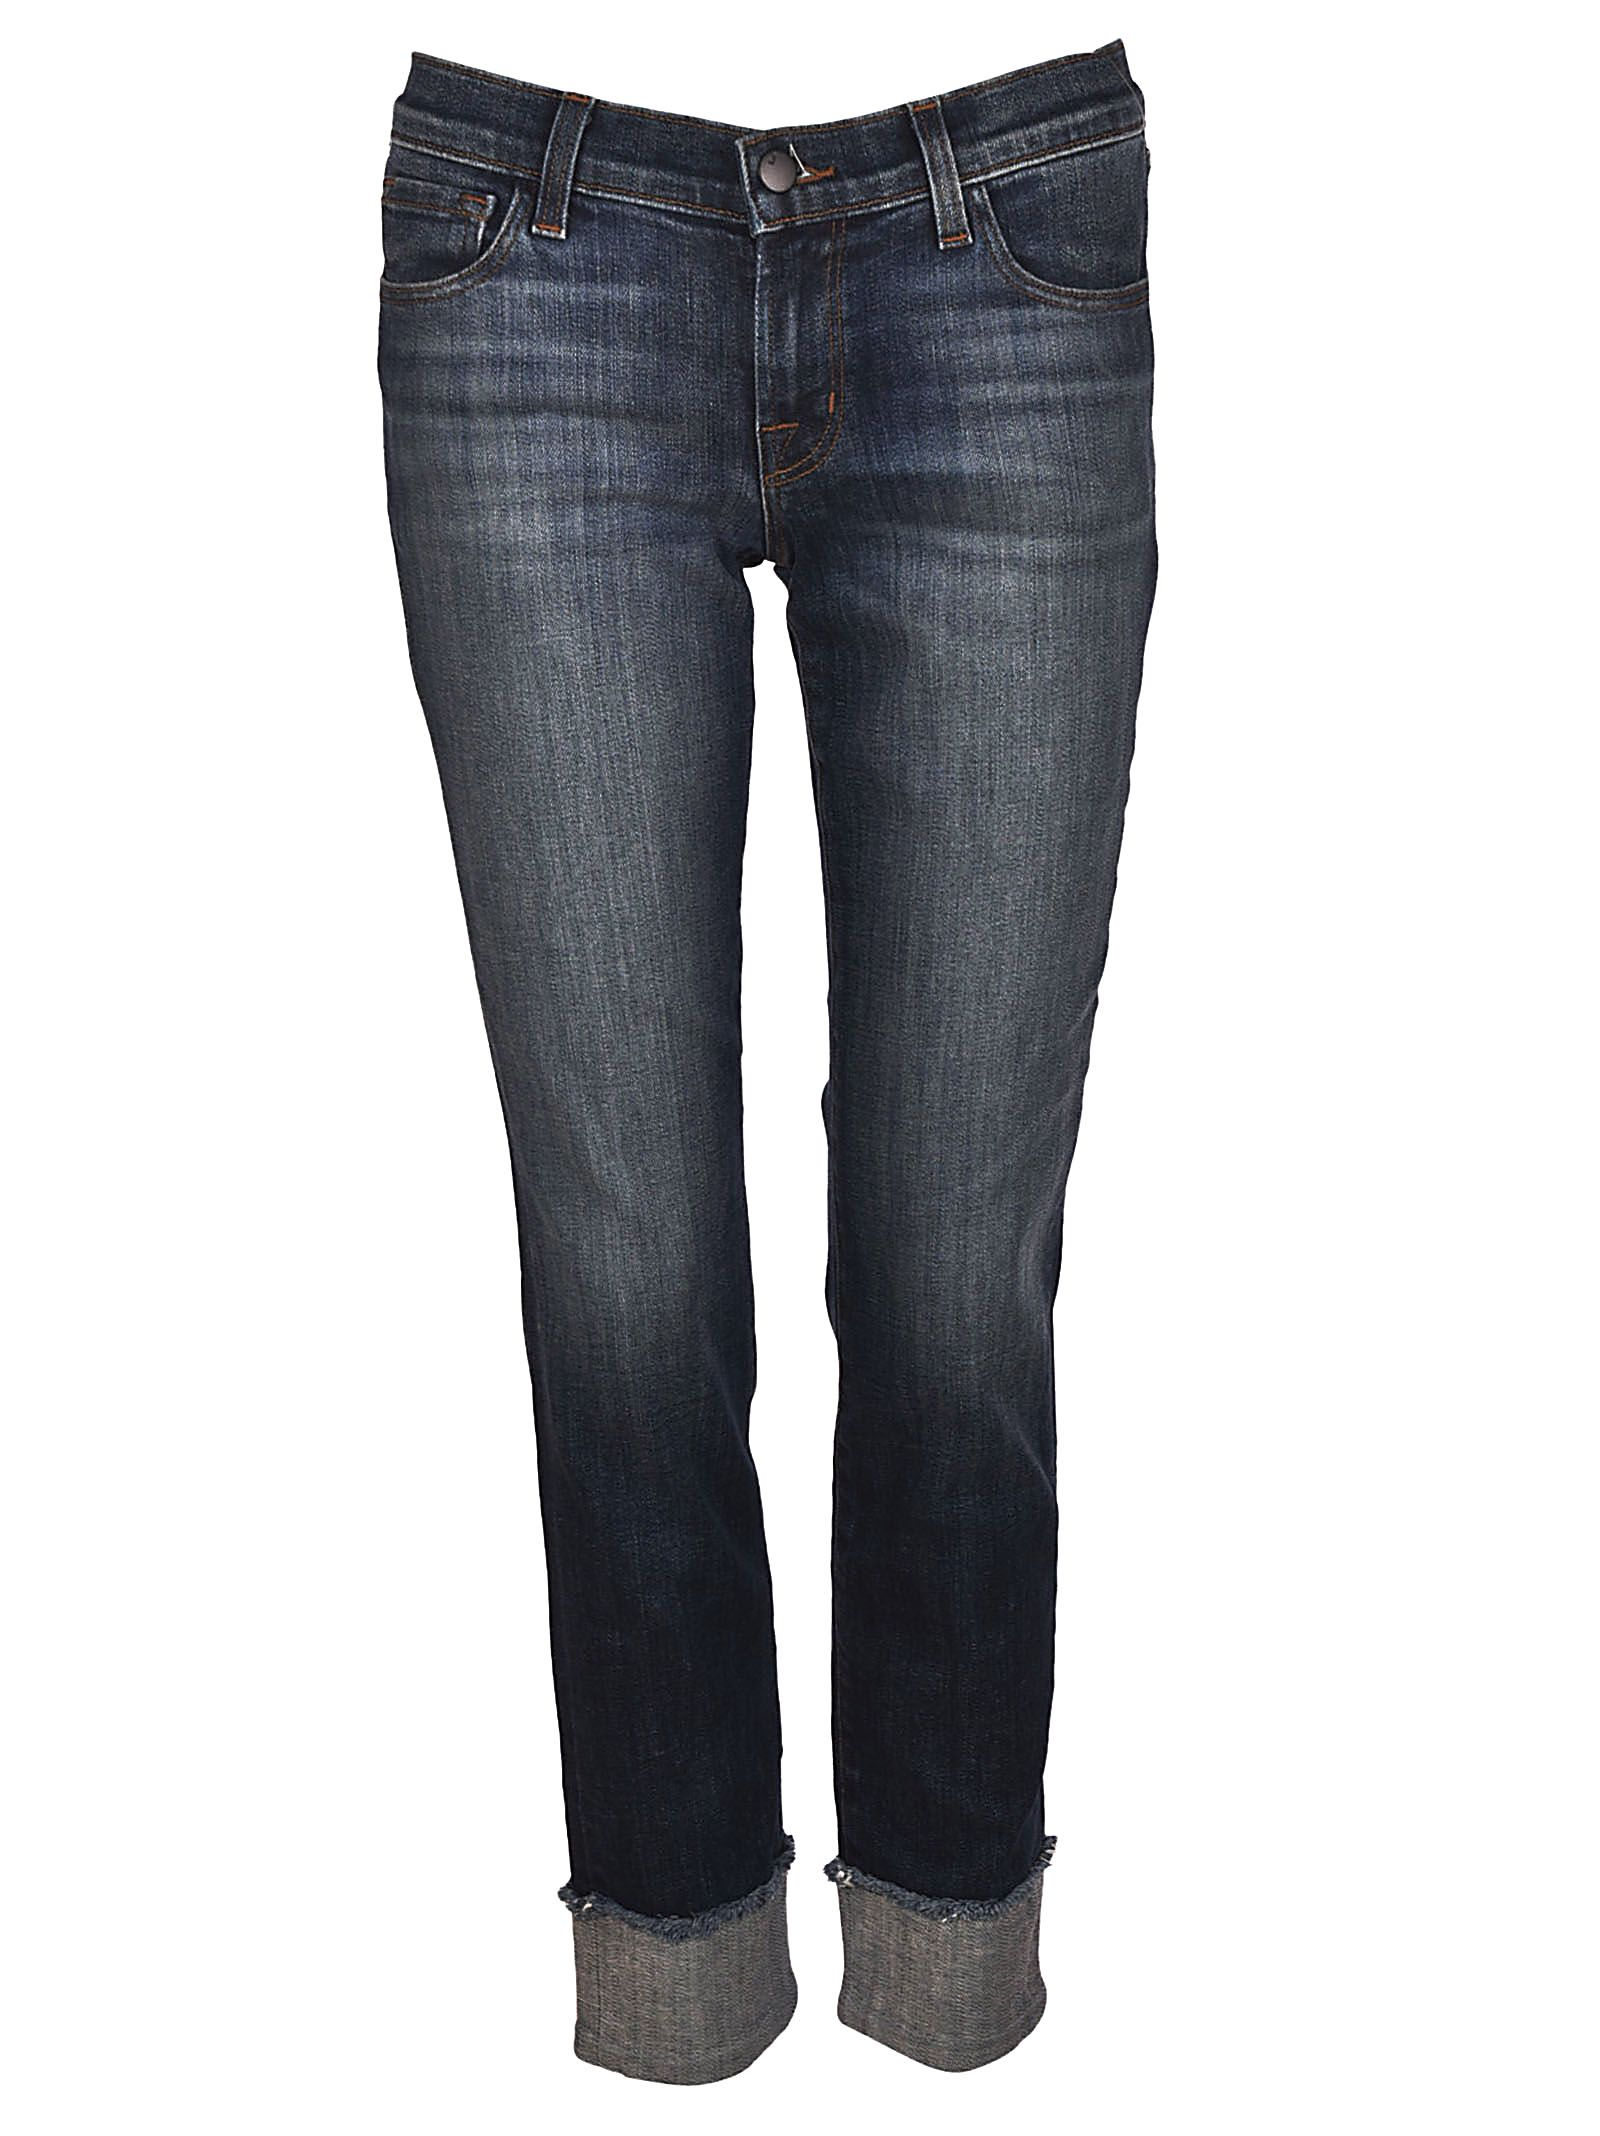 stonewashed cropped jeans - Blue J Brand qCGjrD